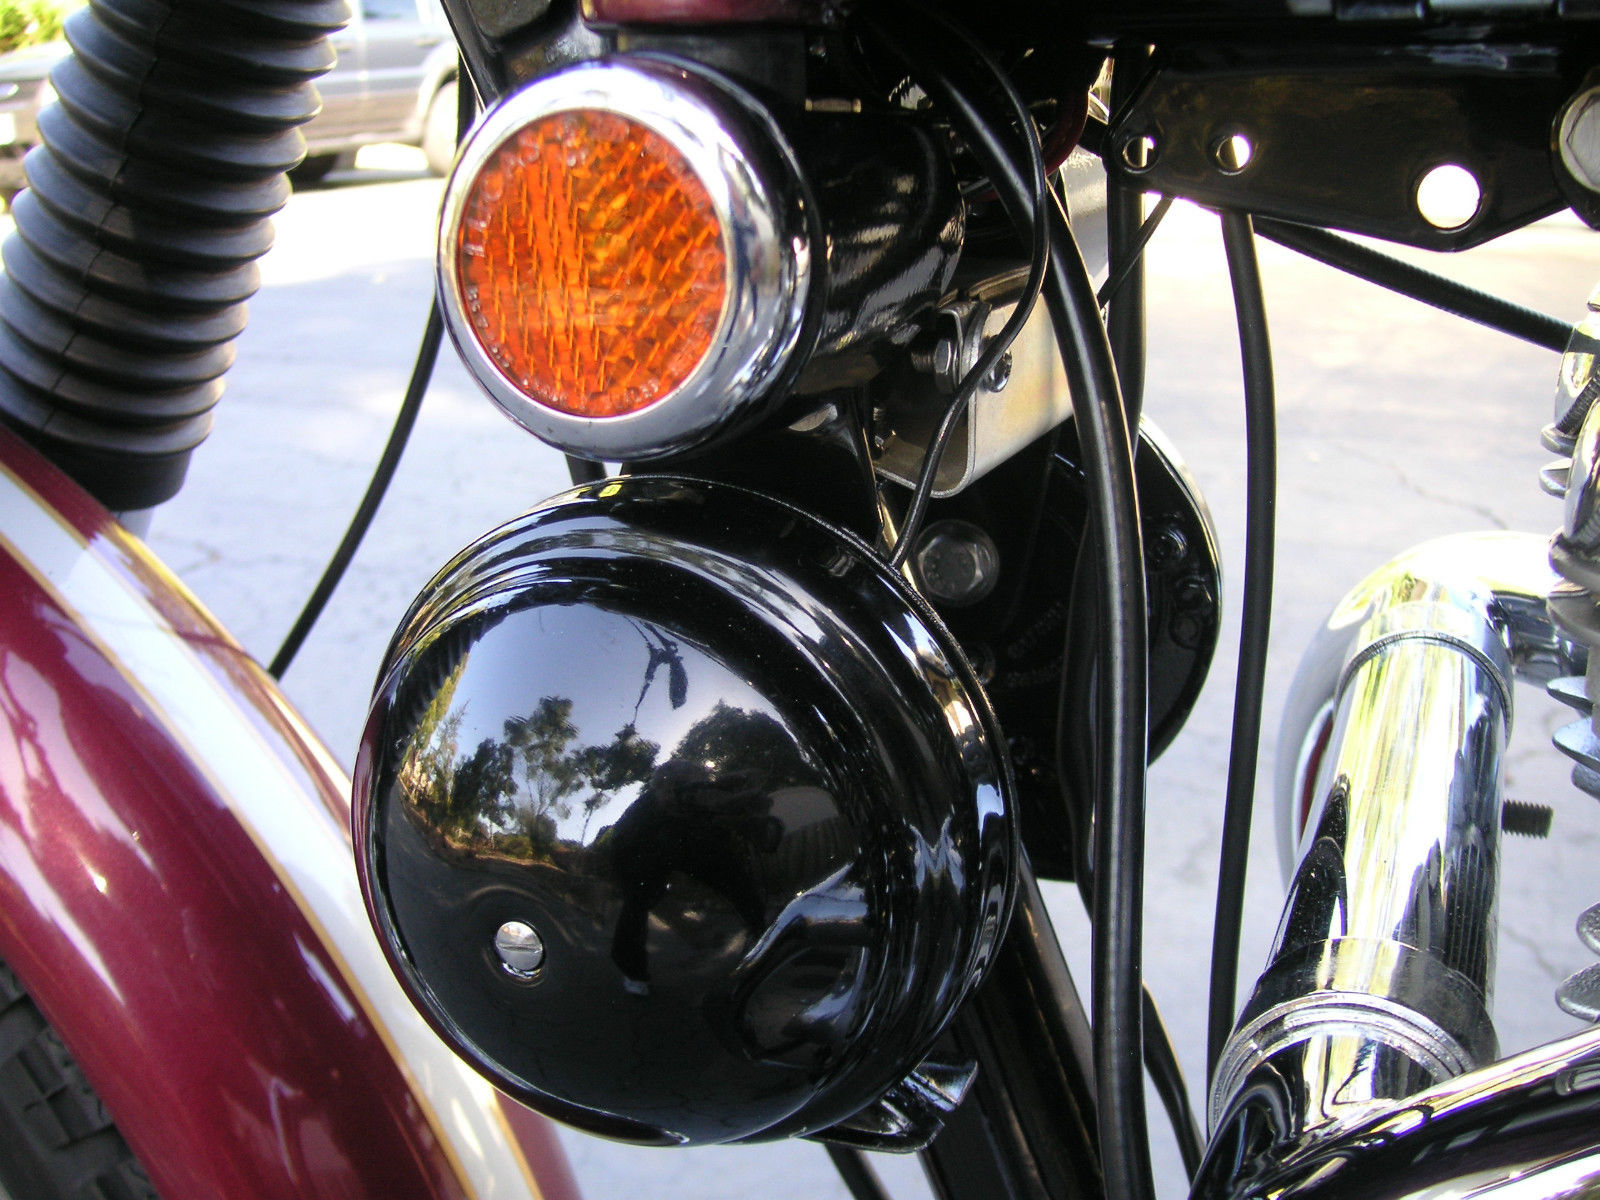 Triumph Bonneville - 1970 - Period Horns, Reflector and Cables.